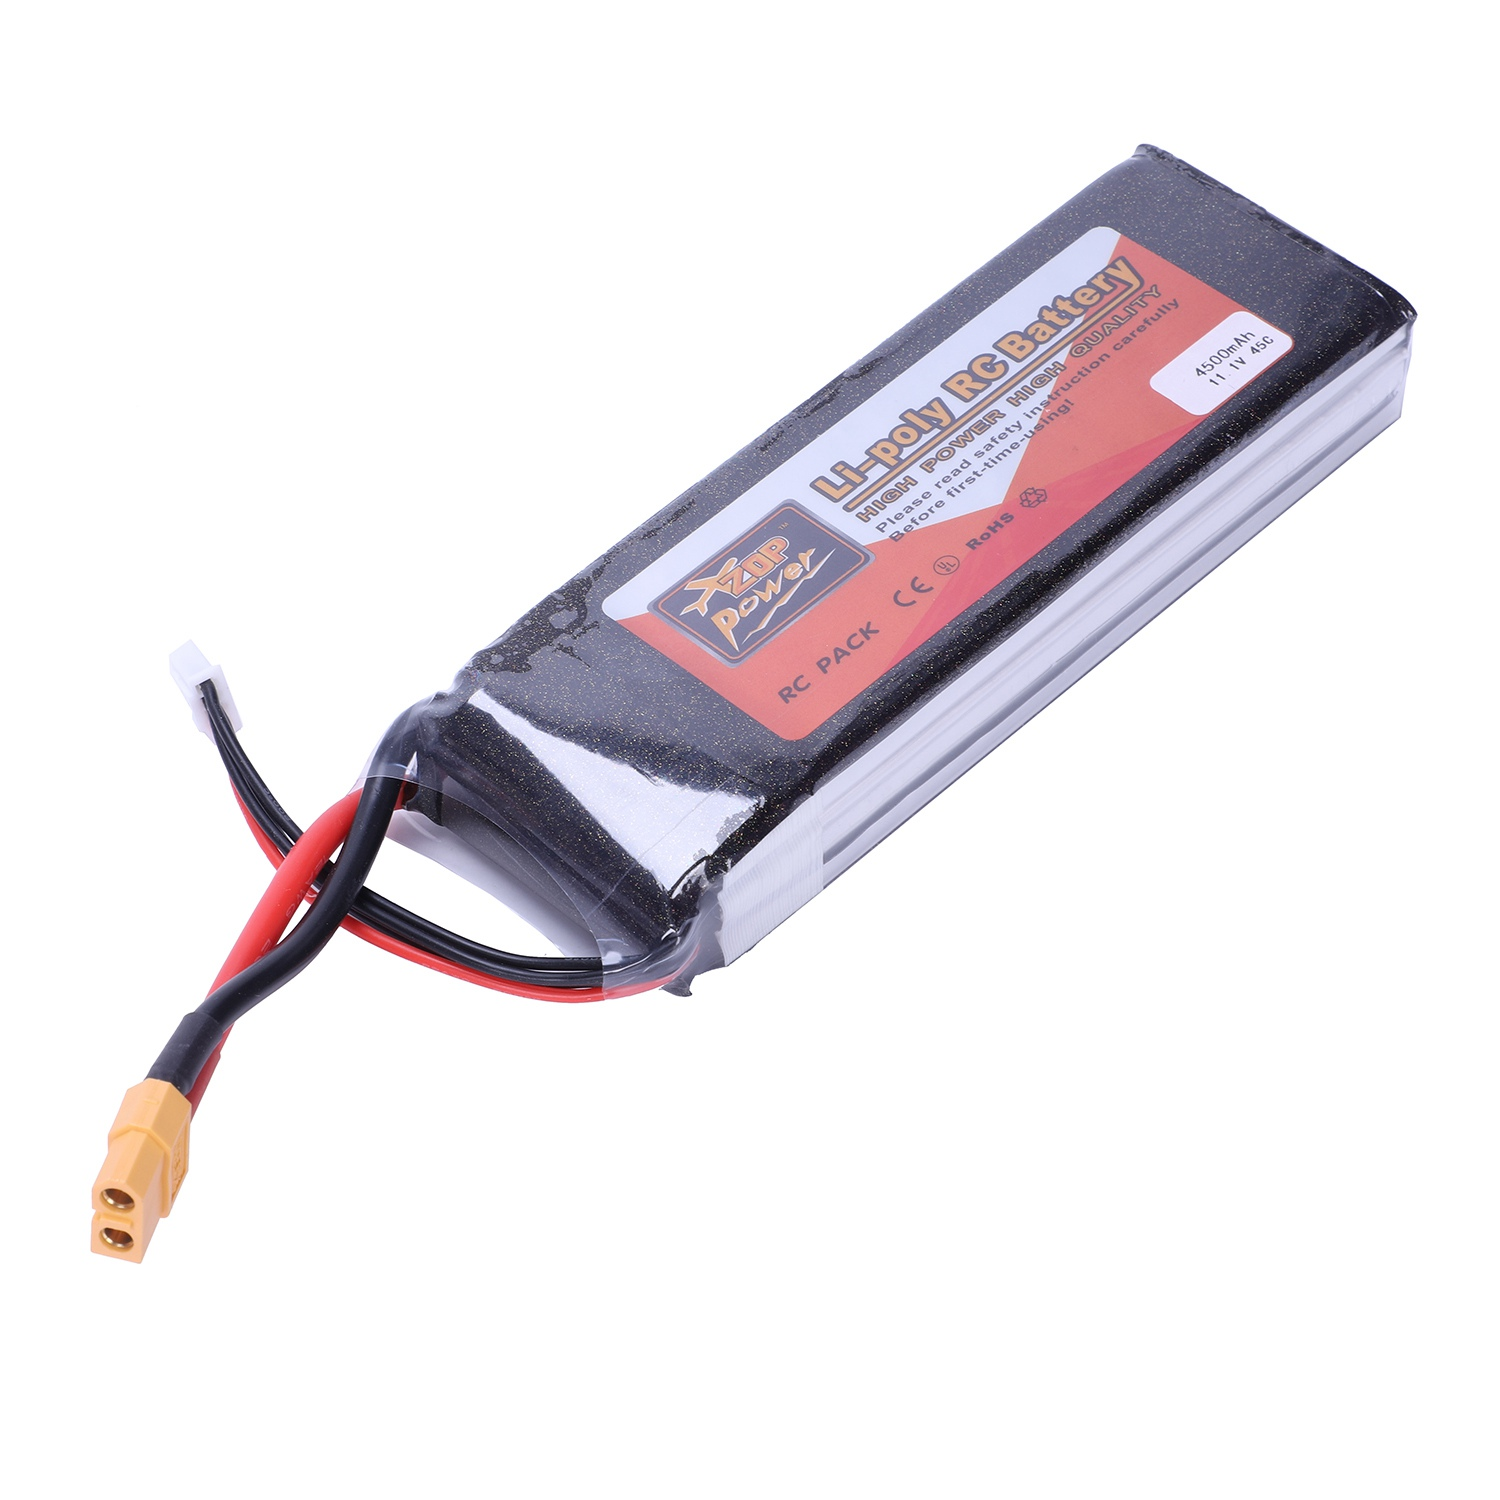 ZOP POWER 11.1V 4500mah 3S 45C Lipo Battery XT60 Plug For Rc Car Rc Helicopter